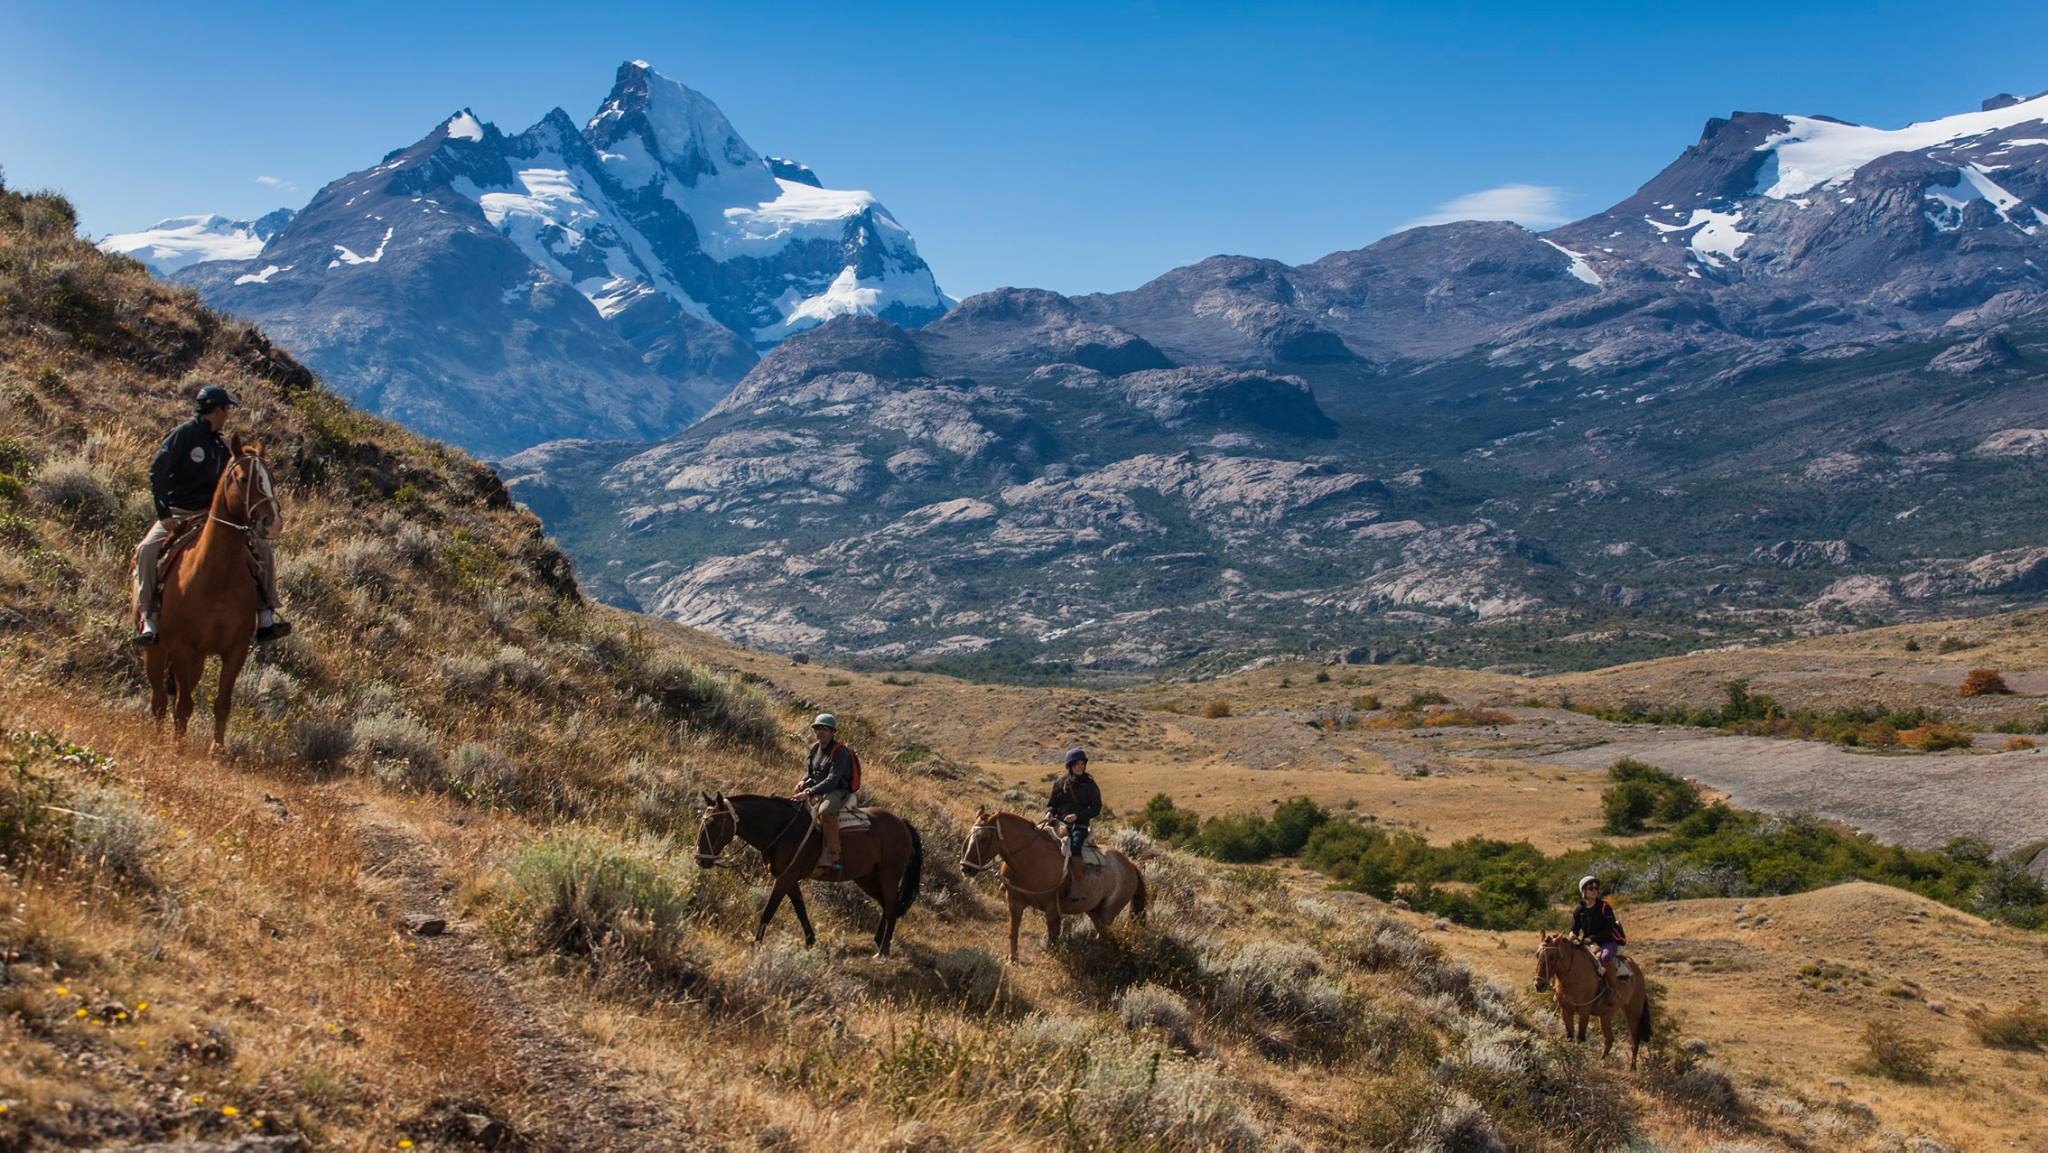 small group of people on horseback riding through mountains